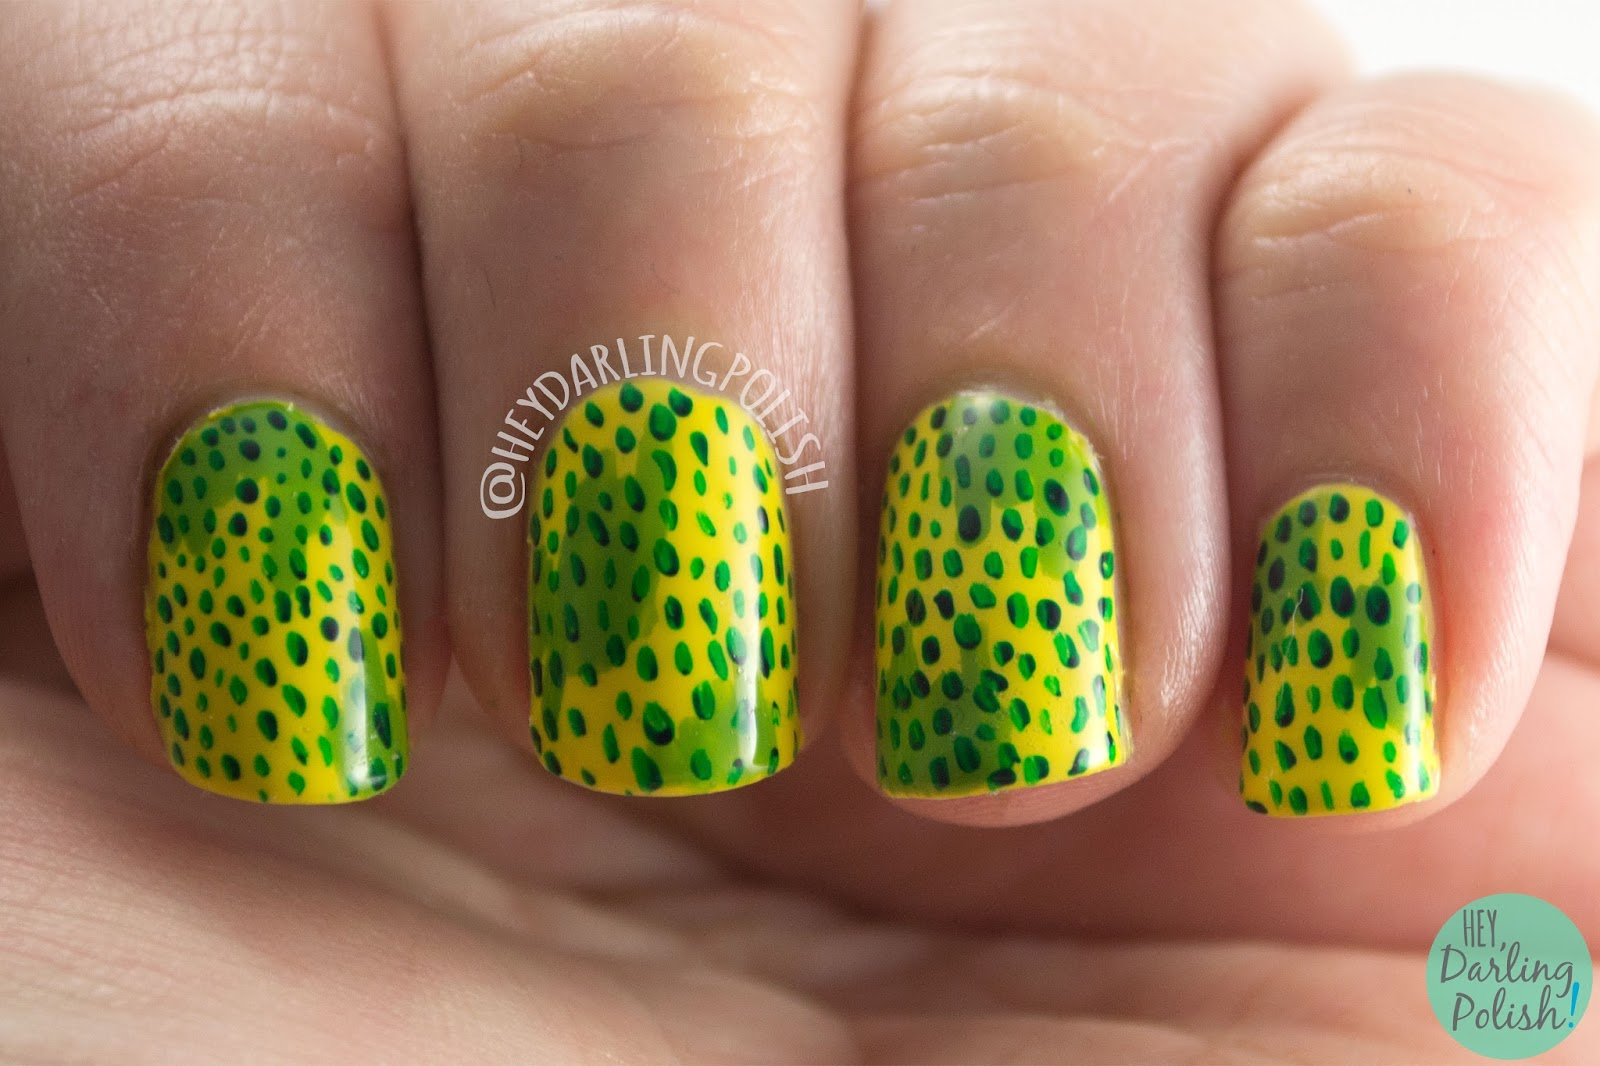 nails, nail art, nail polish, yellow, green, spots, hey darling polish, zoya, 2015 cnt 31 day challenge, pattern, freehand